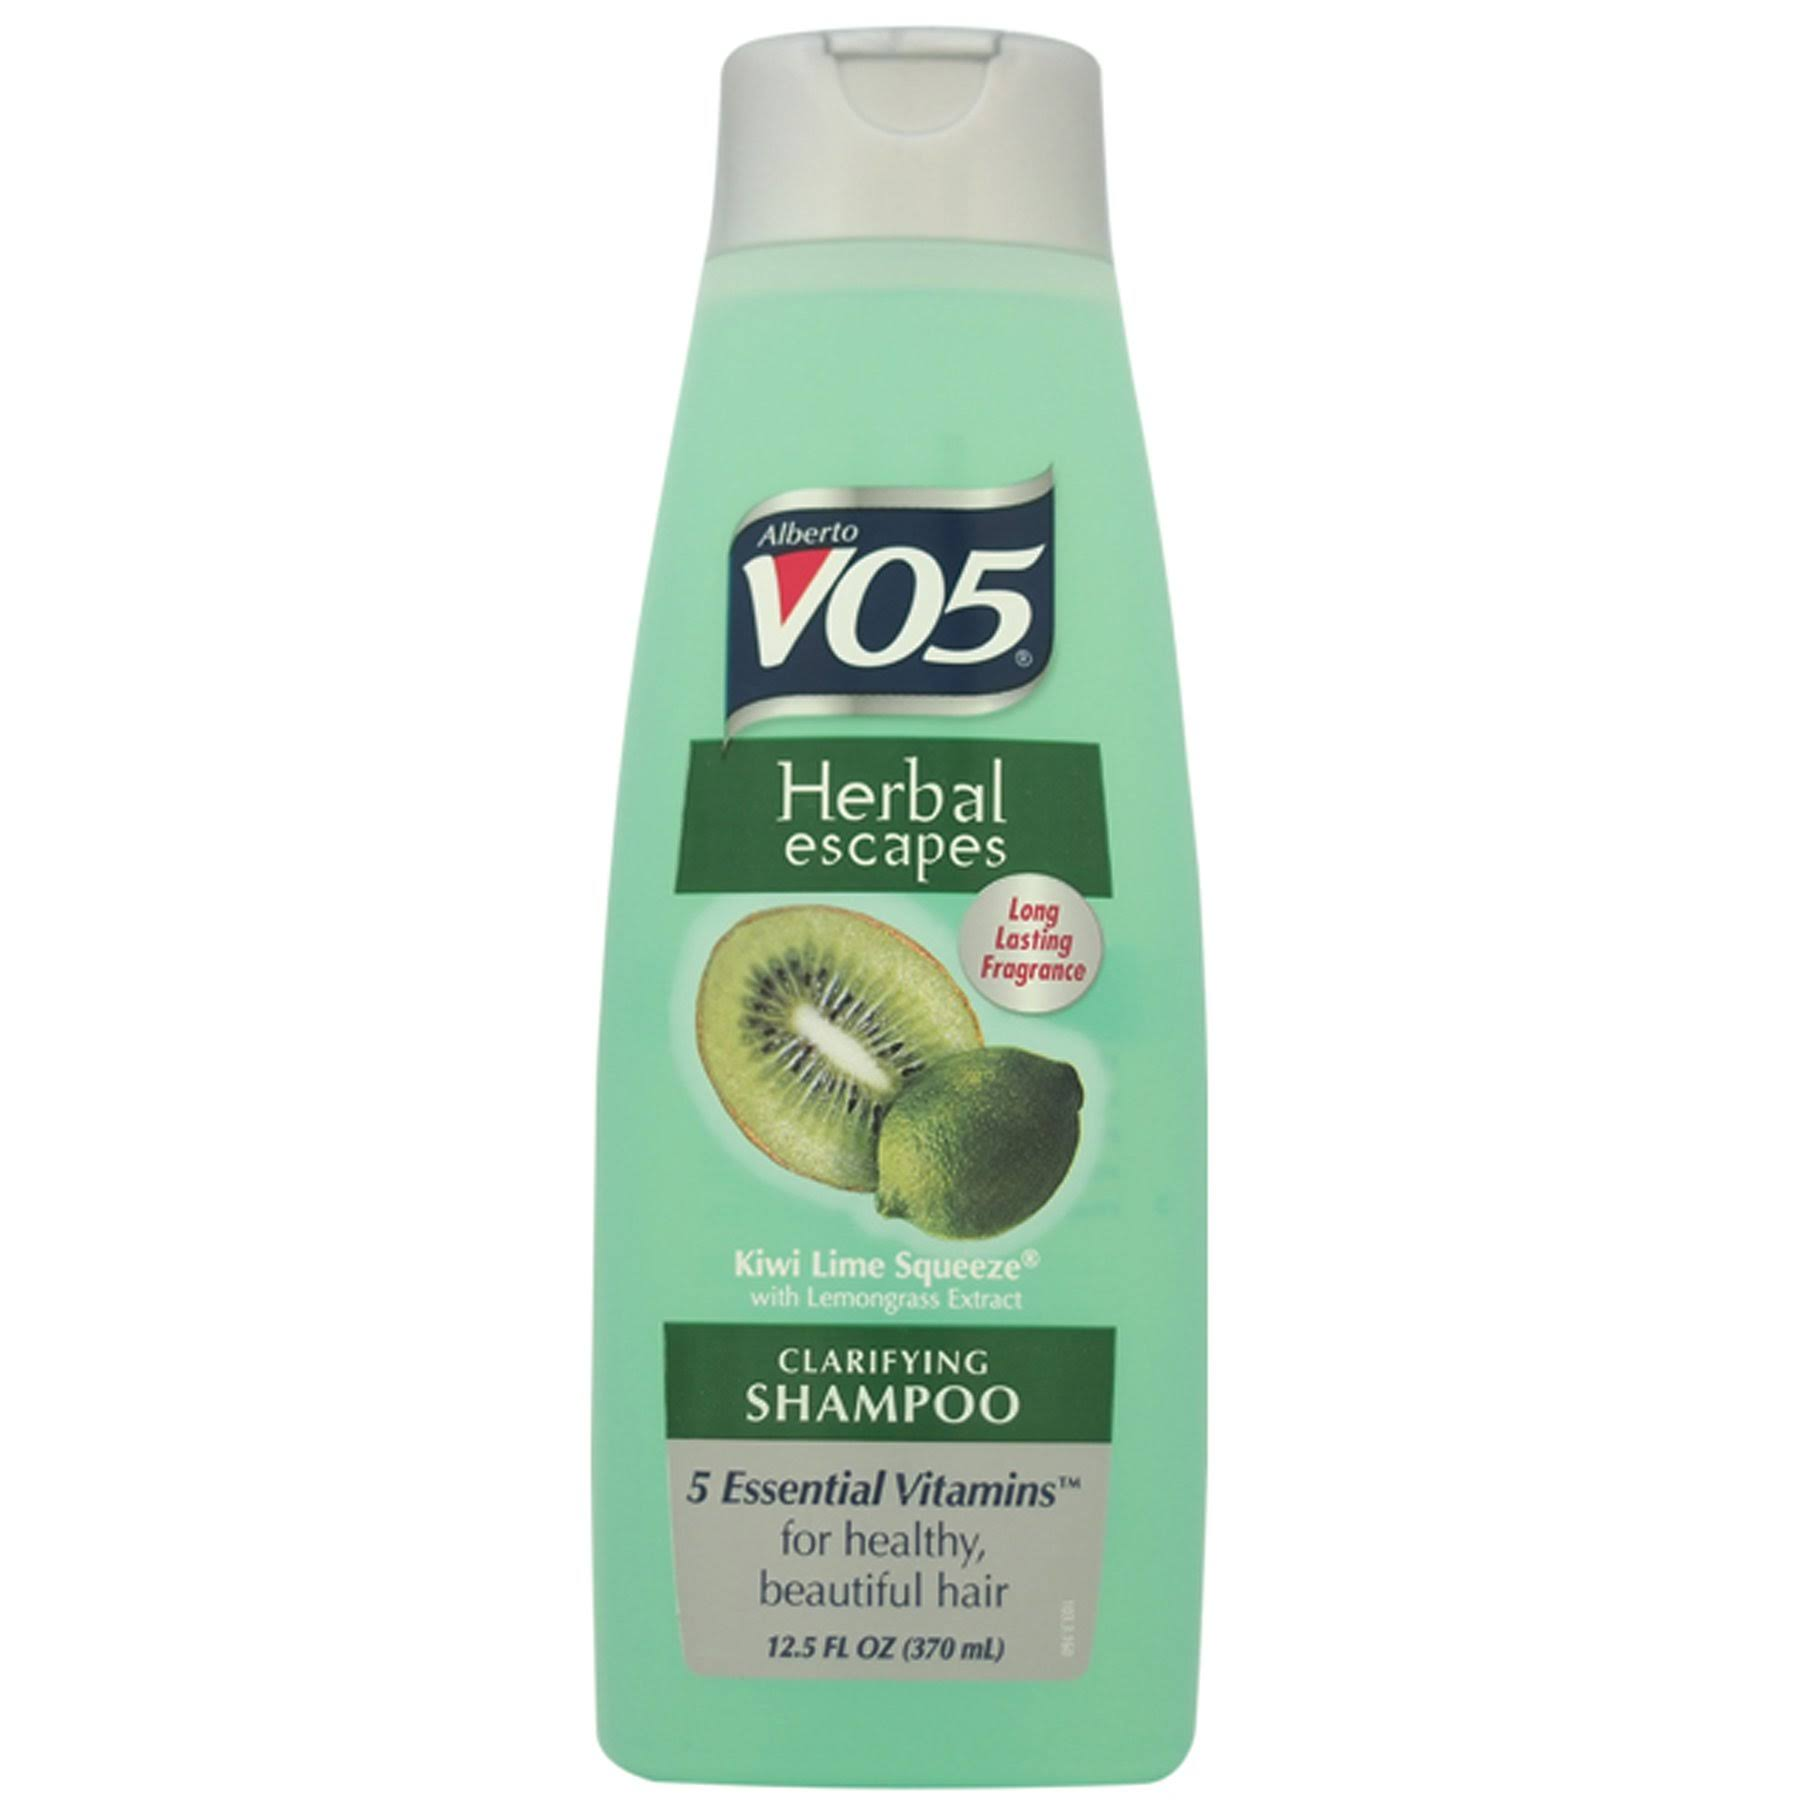 Alberto VO5 Herbal Escapes Clarifying Shampoo - Kiwi Lime Squeeze, 370ml